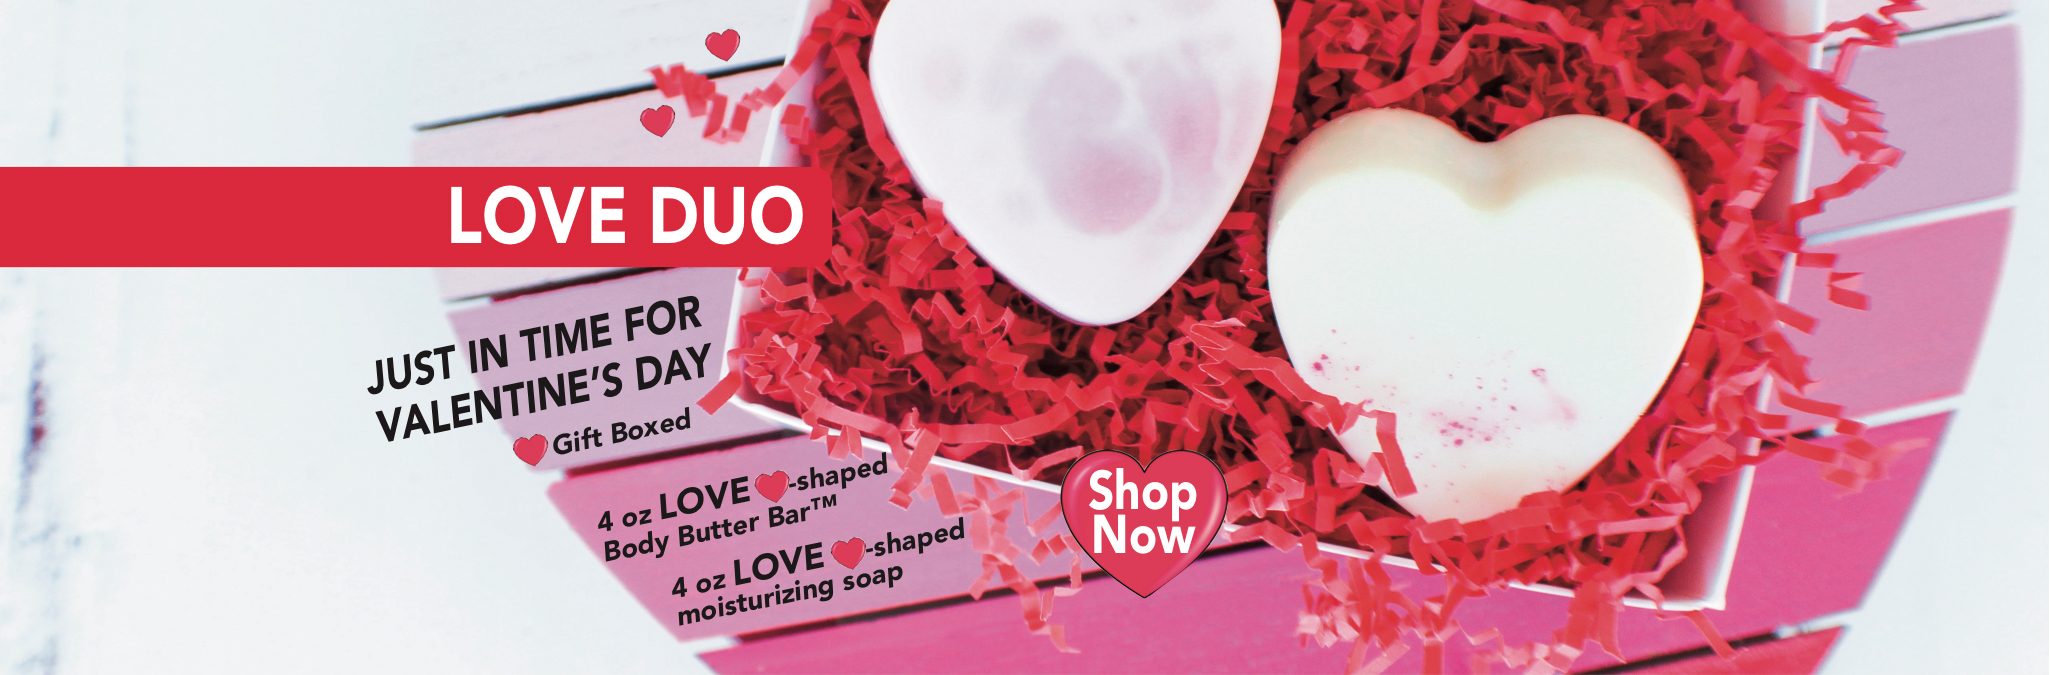 Shop the Love Duo!